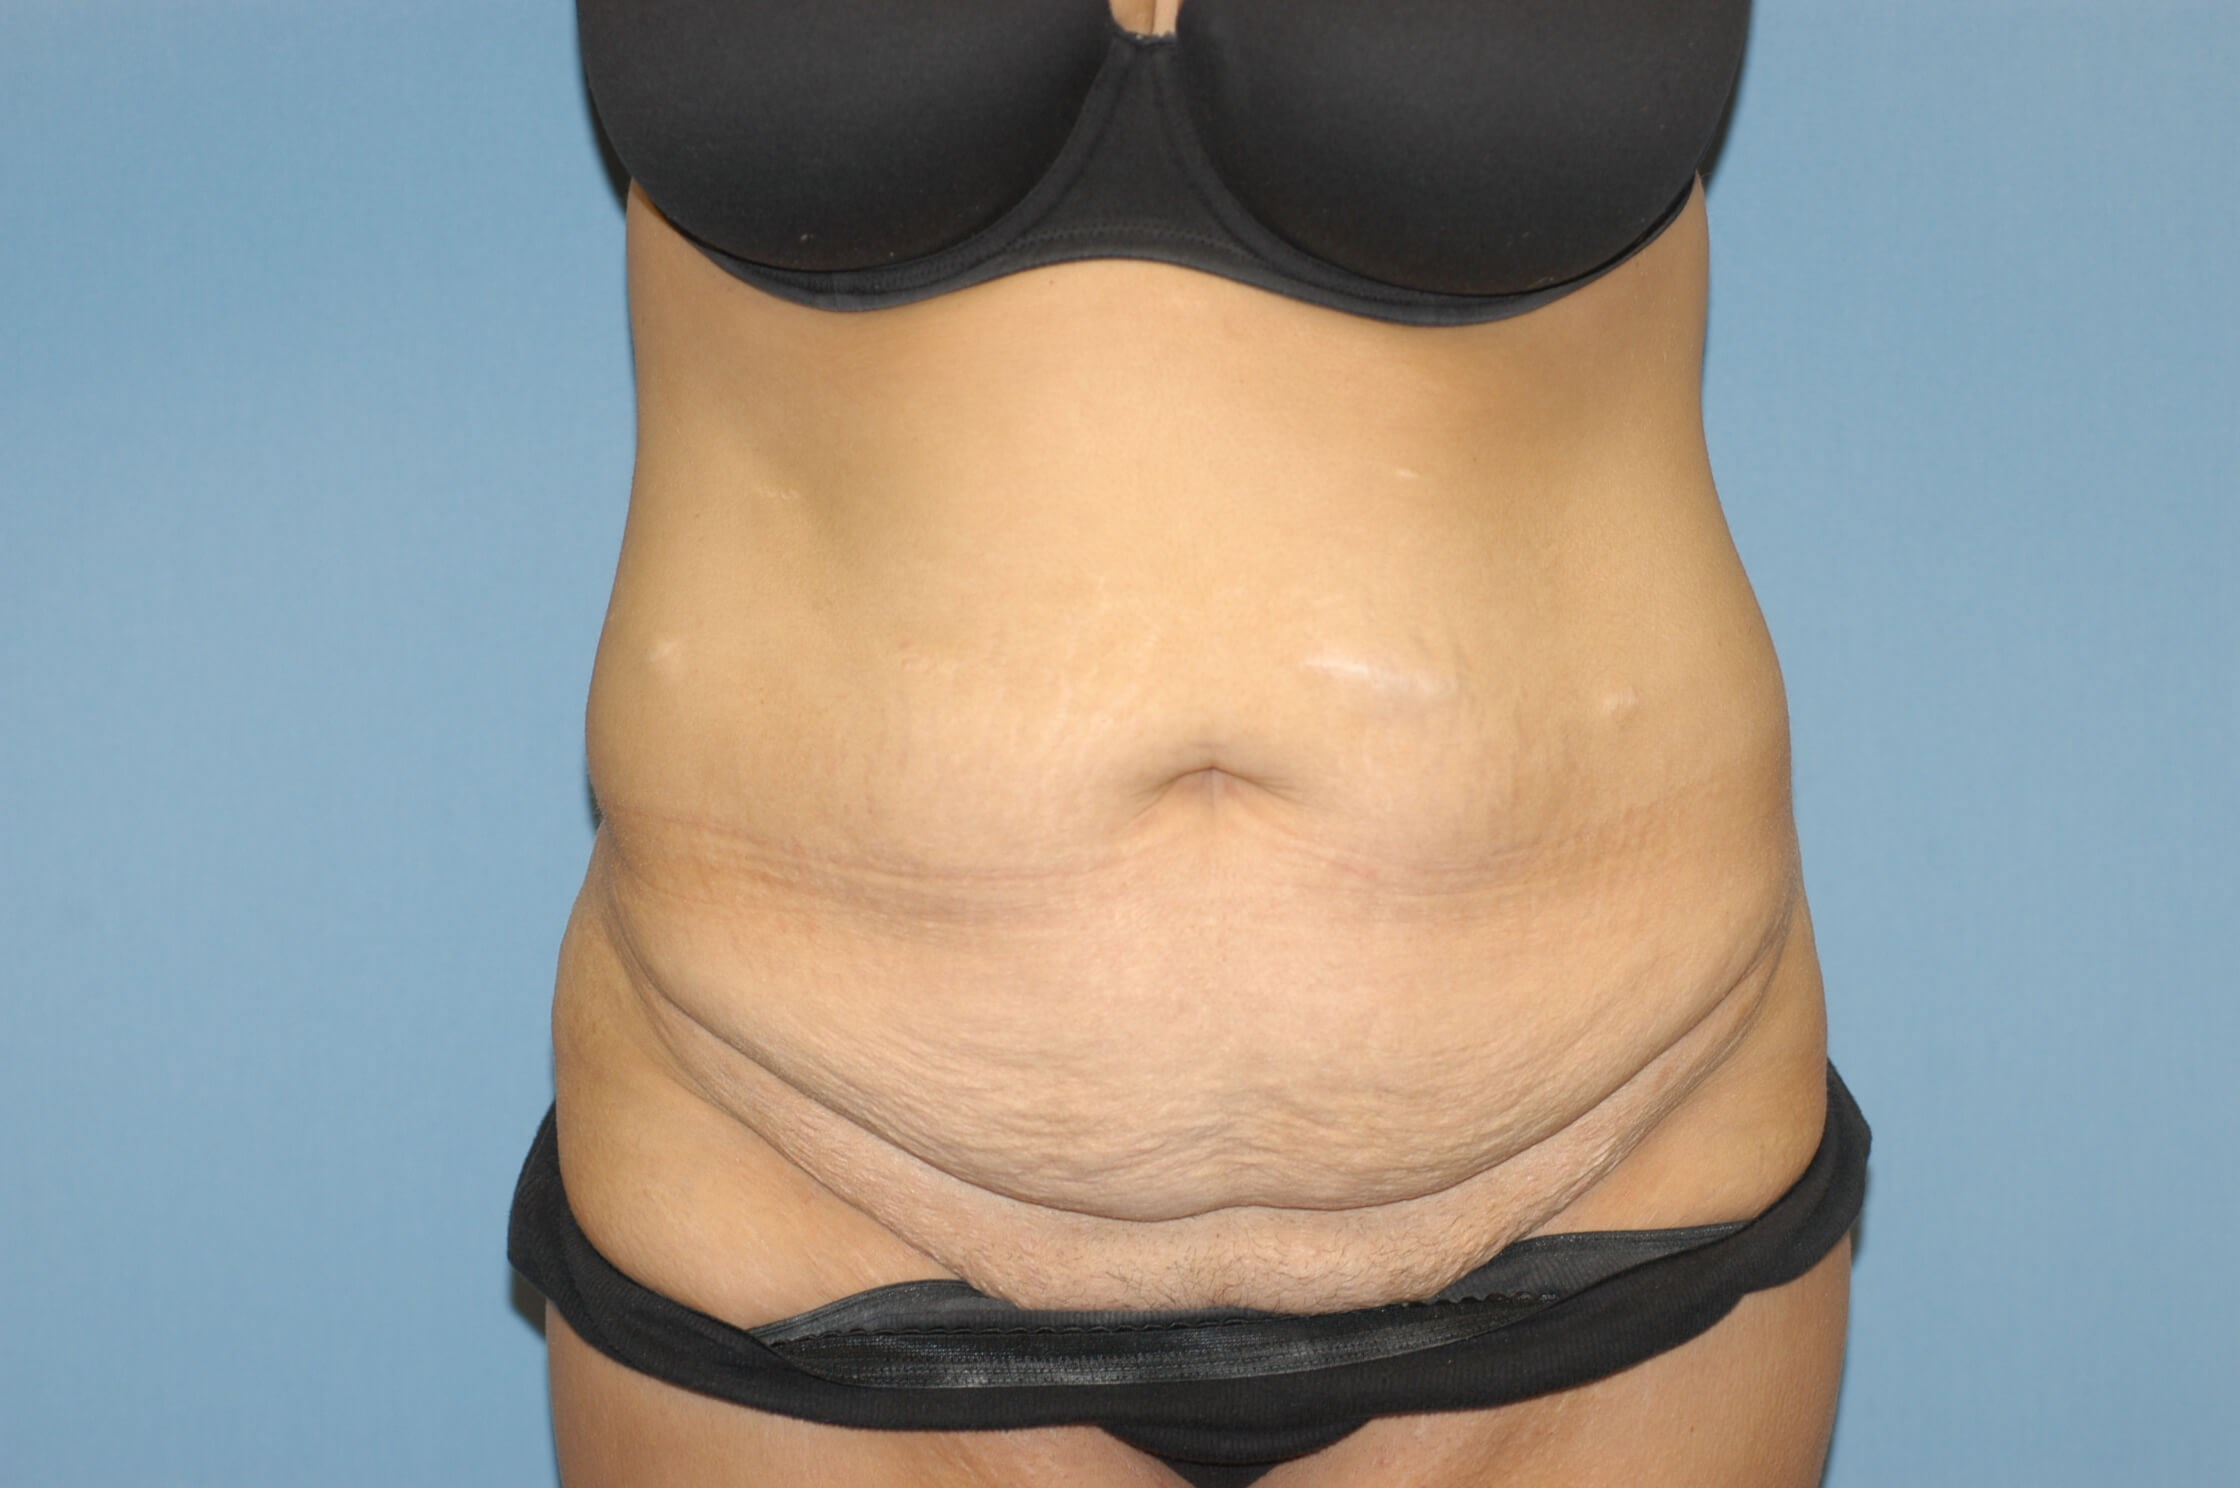 Ny Woman Has Extended Abdominoplasty After Gastric Bypass Surgery